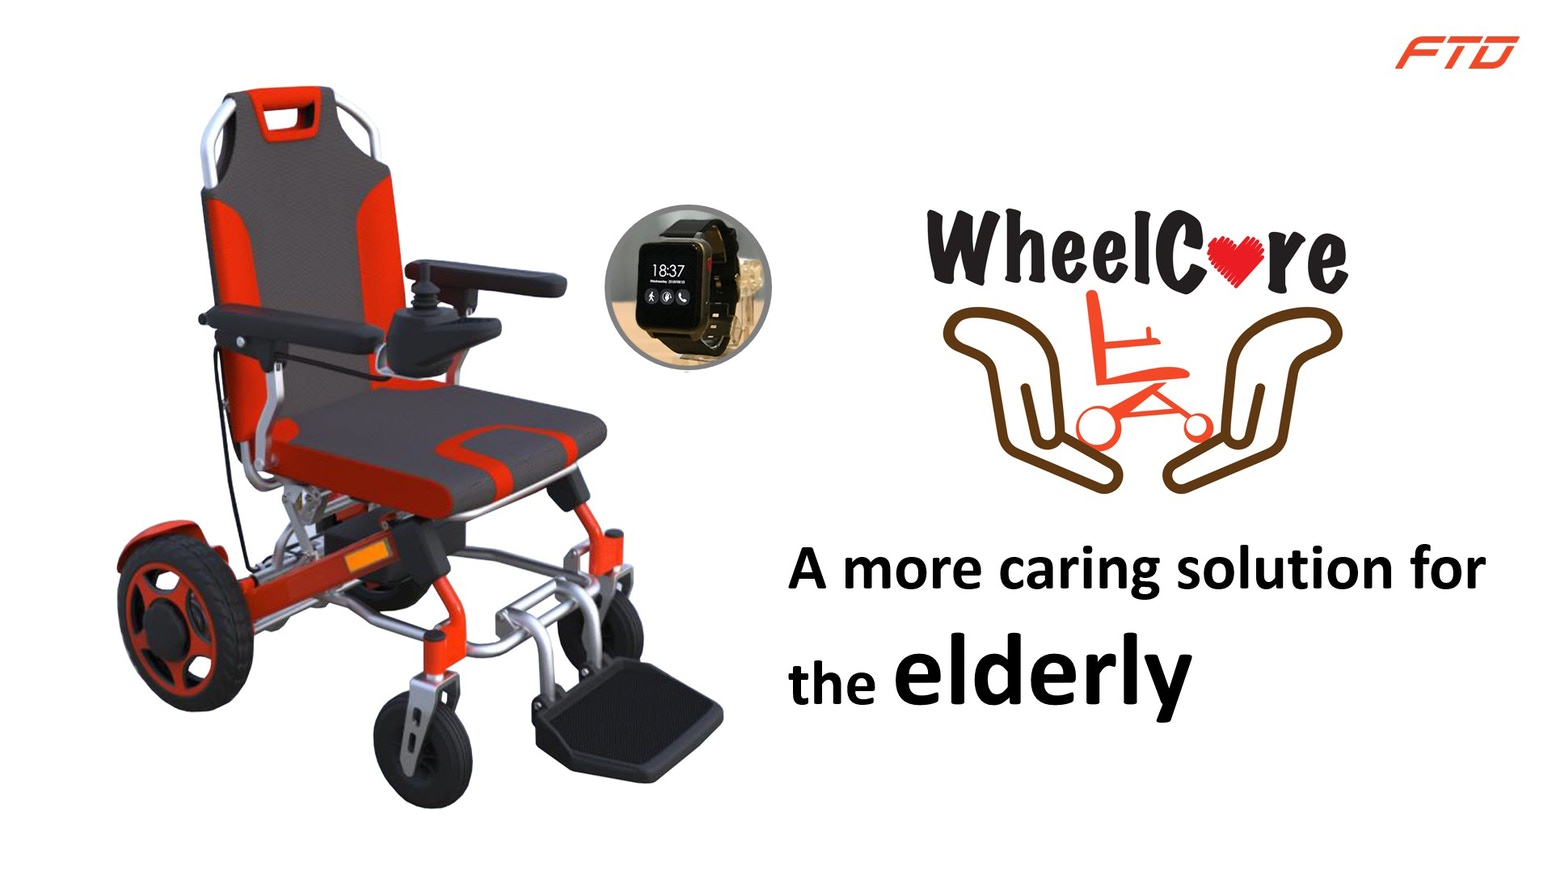 WheelCare is well designed for both carers and those with mobility difficulties (especially the elderly) are always connected.